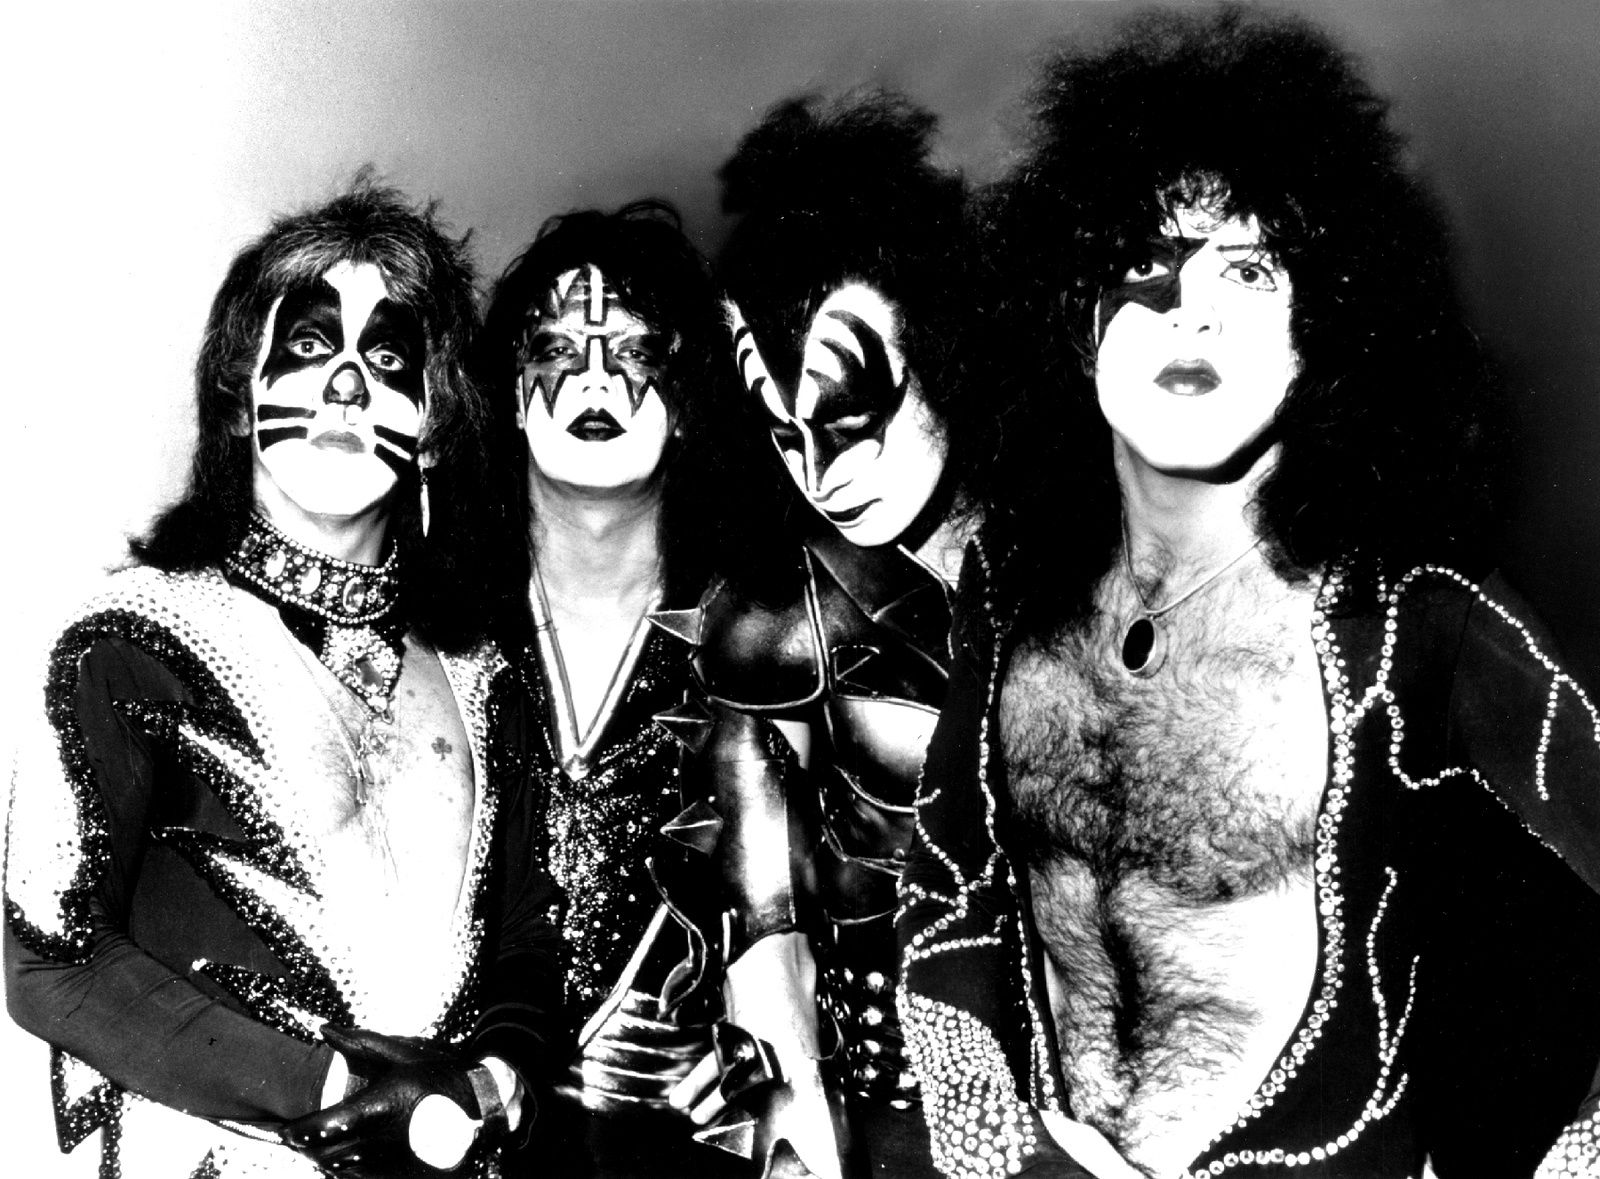 KISS, an American hard rock band